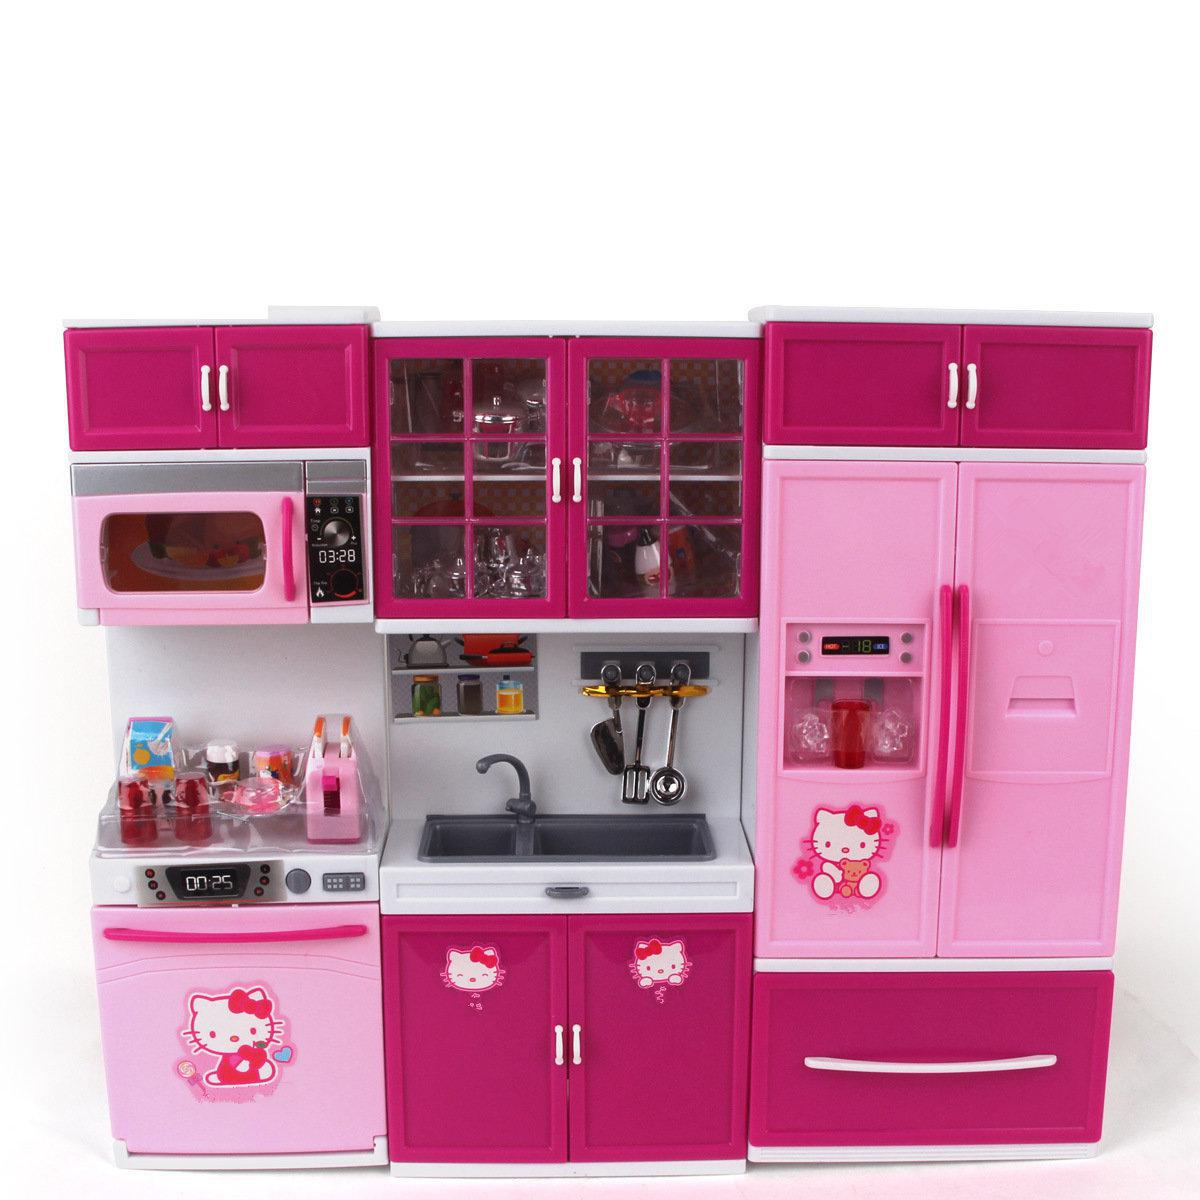 Kids Large Kitchen Playset With Sound And Light Girls&Boy Pretend Cooking Toy Play Set Pink Simulation Cupboard Gift Brinquedos children play simulation platen washing machine voice electric toy gift boy girls